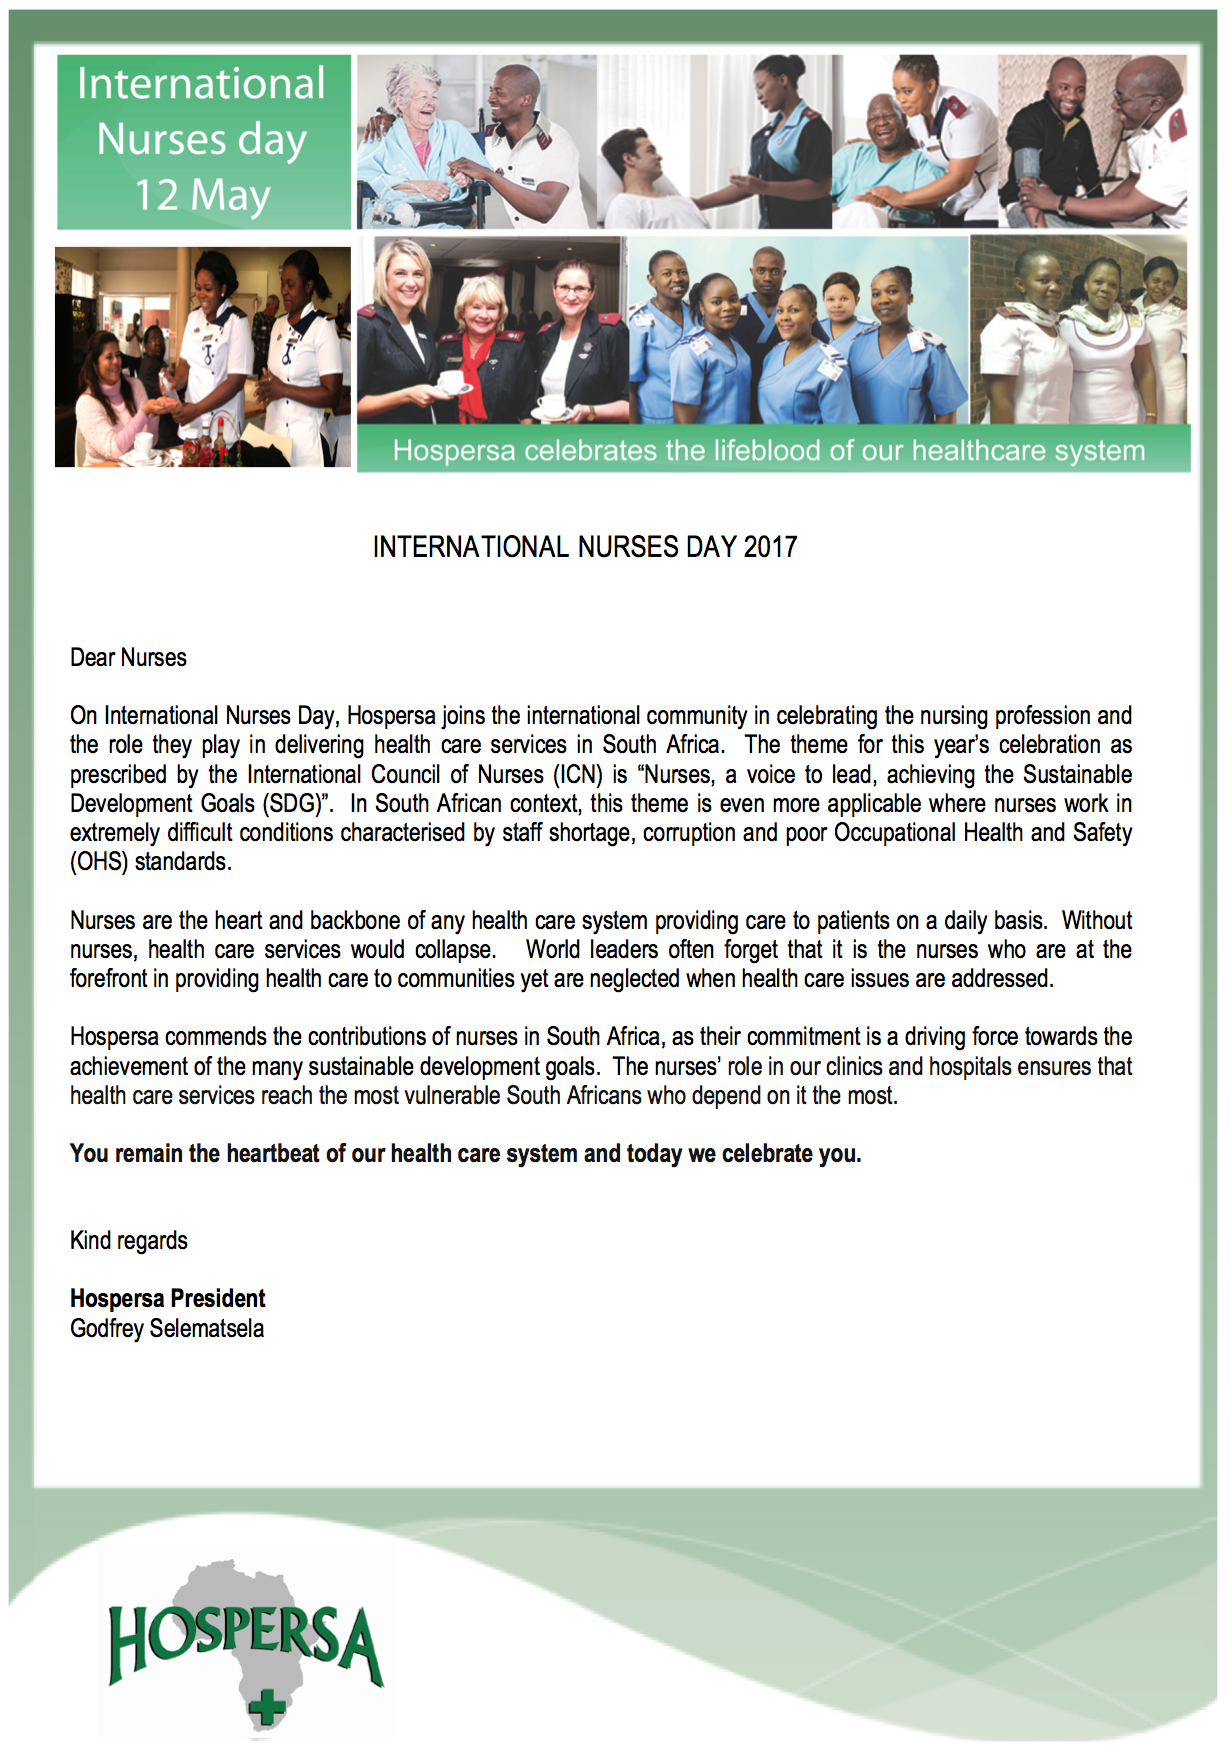 International Nurses Day 2017